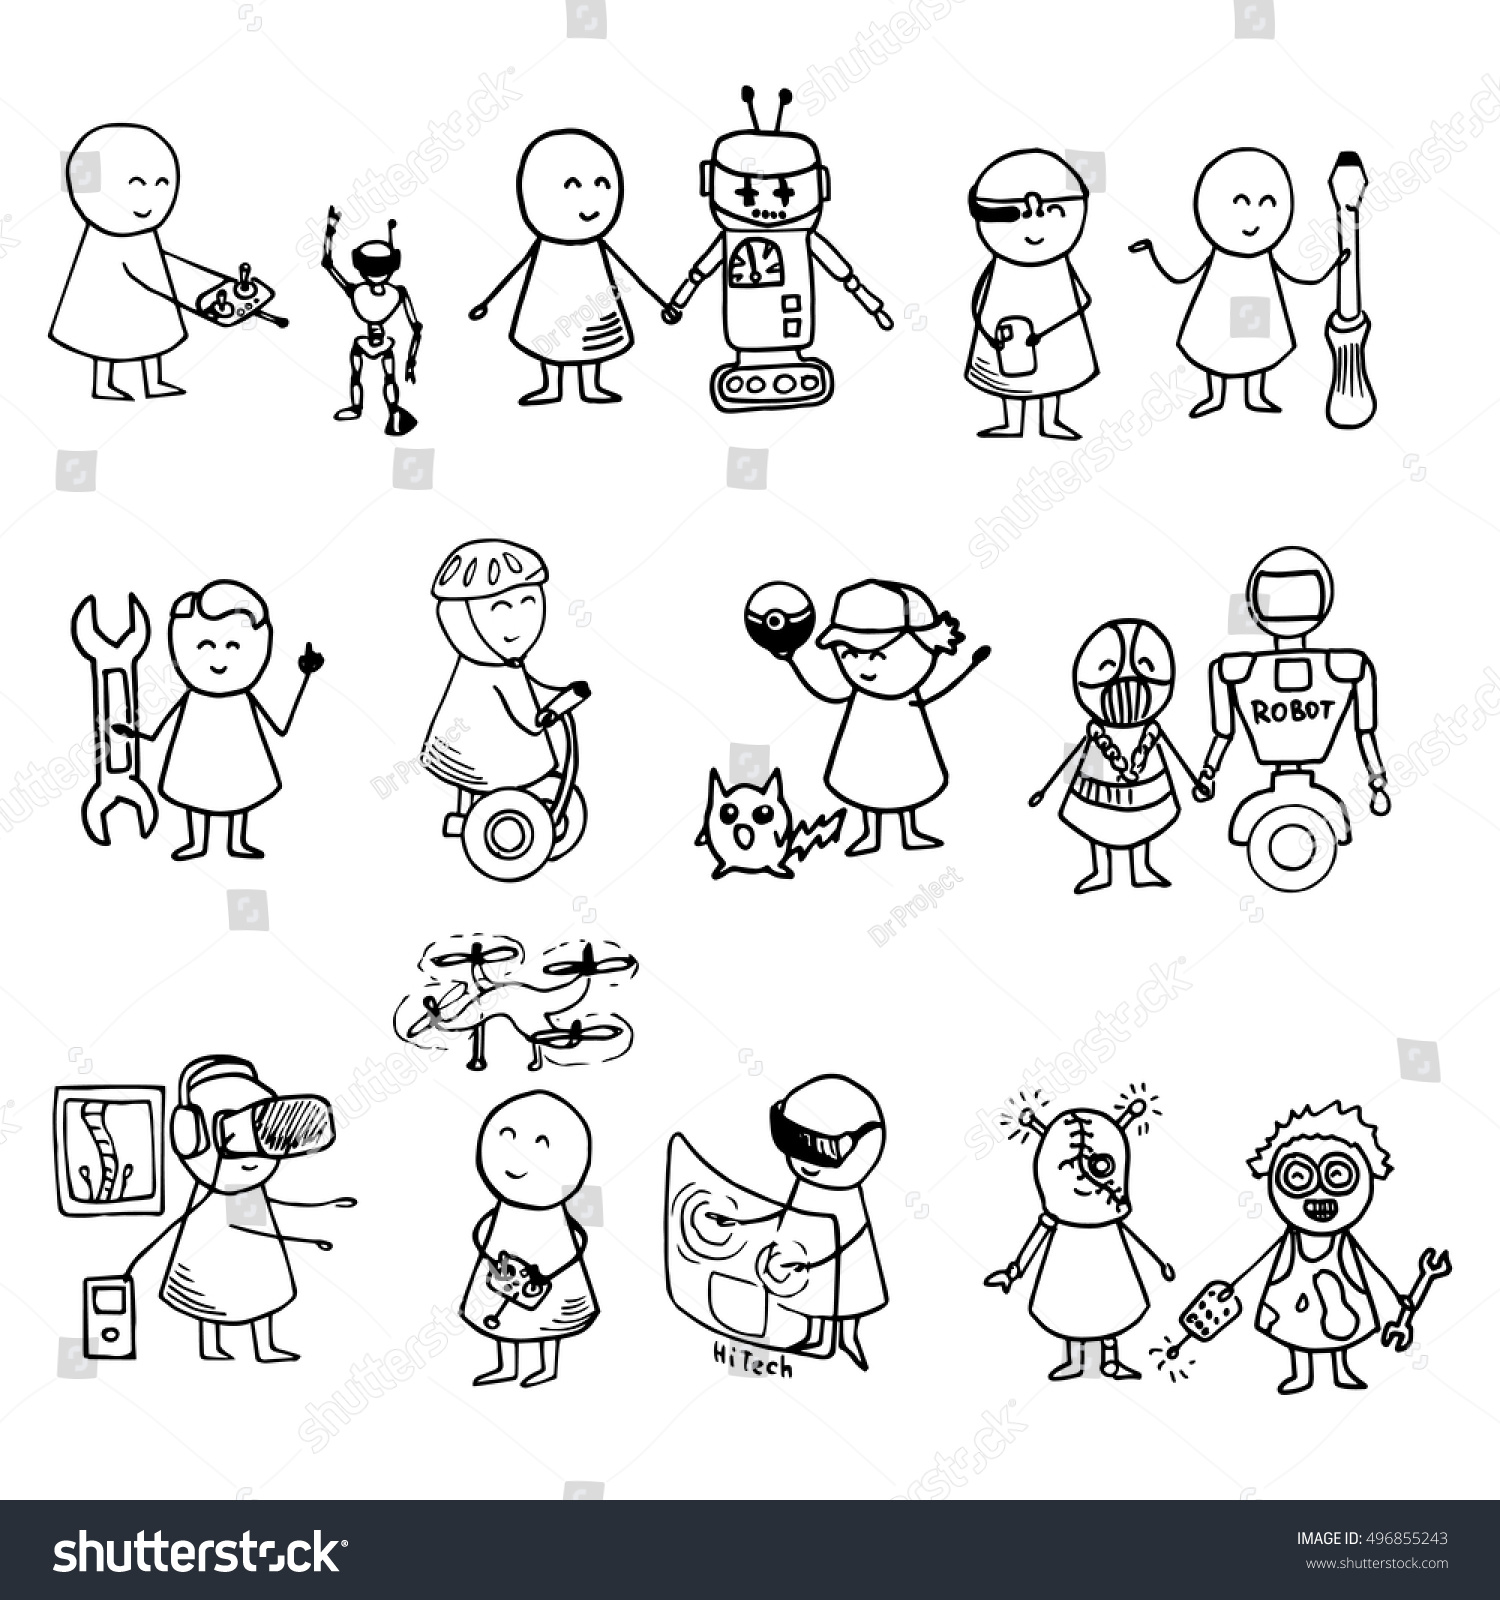 royalty free funny people icons doodle technology 496855243 stock ID Tech Camp funny people icons doodle technology big set vector hi tech hand drawn illustration